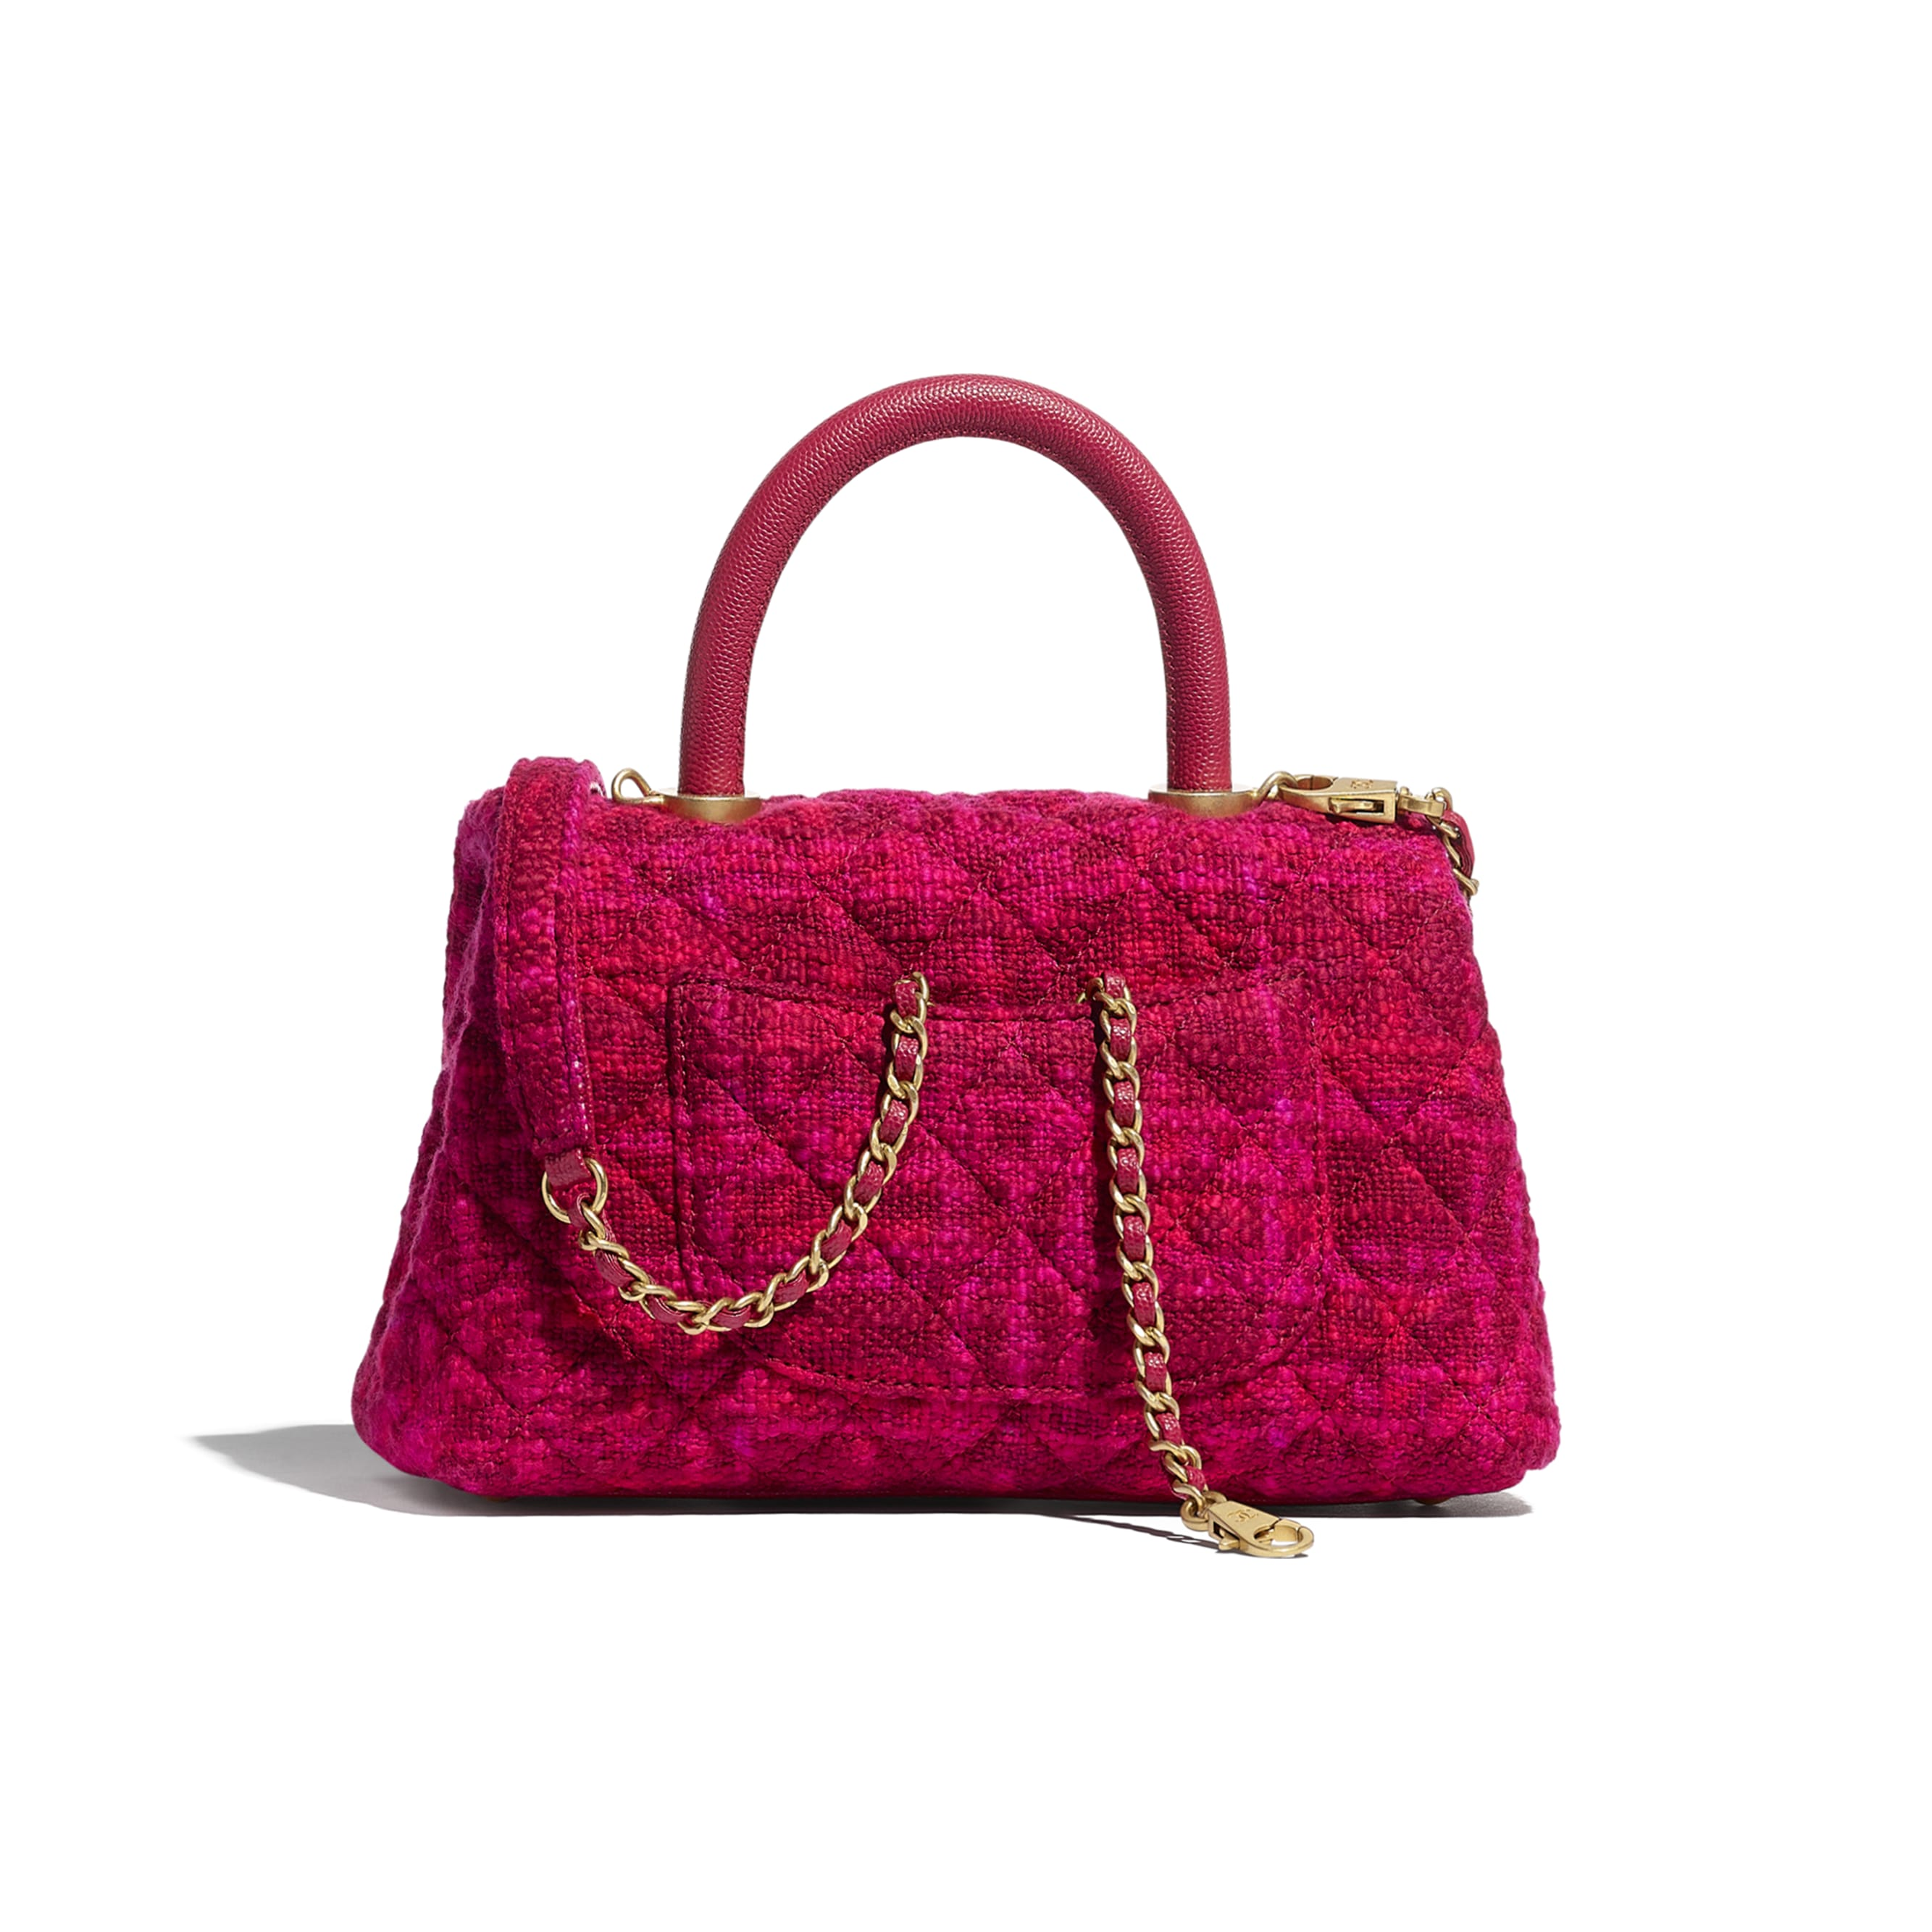 Small Flap Bag with Top Handle - Fuchsia & Red - Cotton Tweed, Grained Calfskin & Gold-Tone Metal - CHANEL - Alternative view - see standard sized version